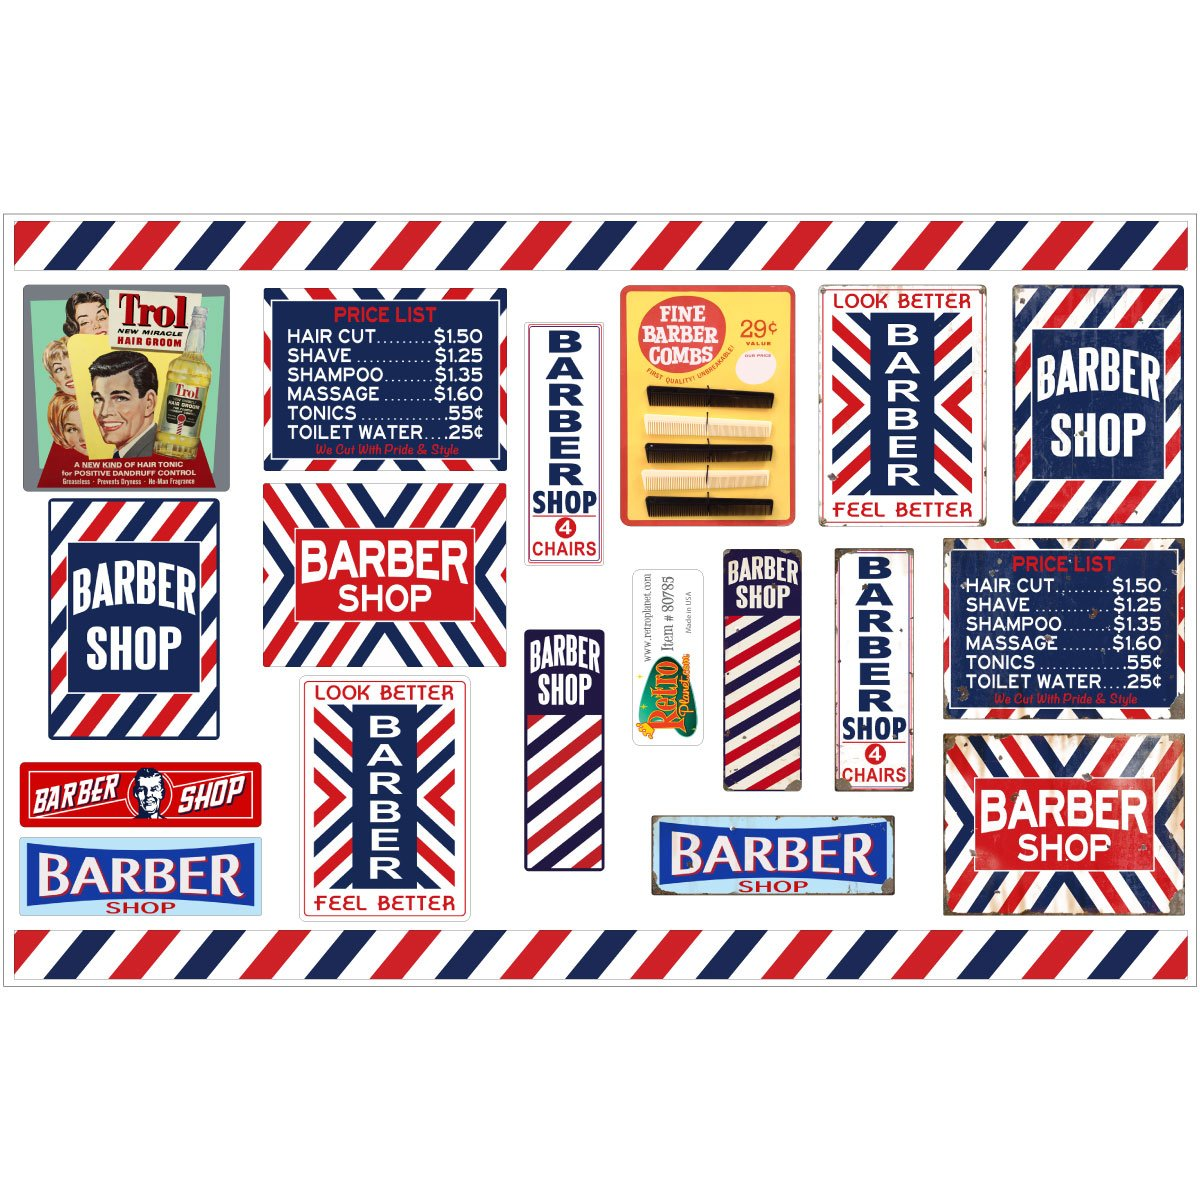 Barber Shop Haircut Vinyl Sticker Sheet of 19 Vintage Style Decals by Retro Planet B01FT46C6M